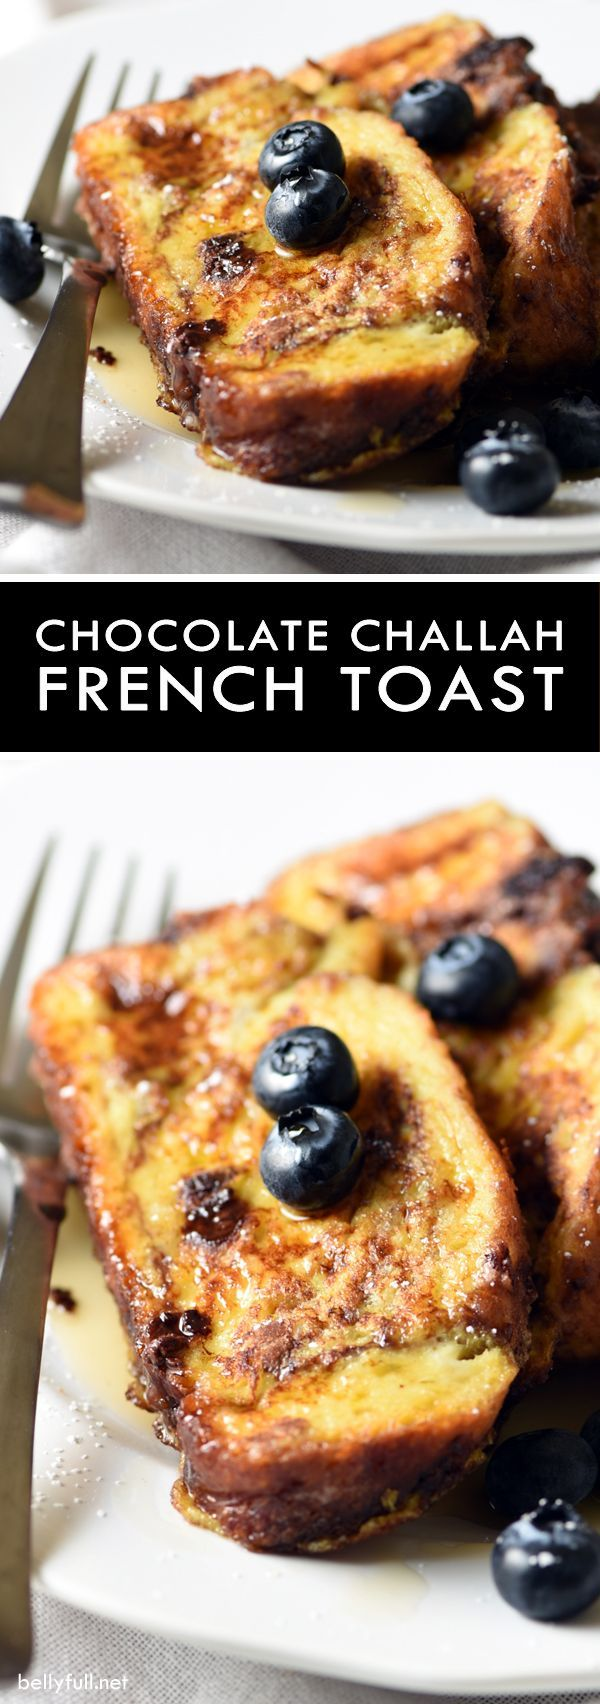 Chocolate Challah French Toast